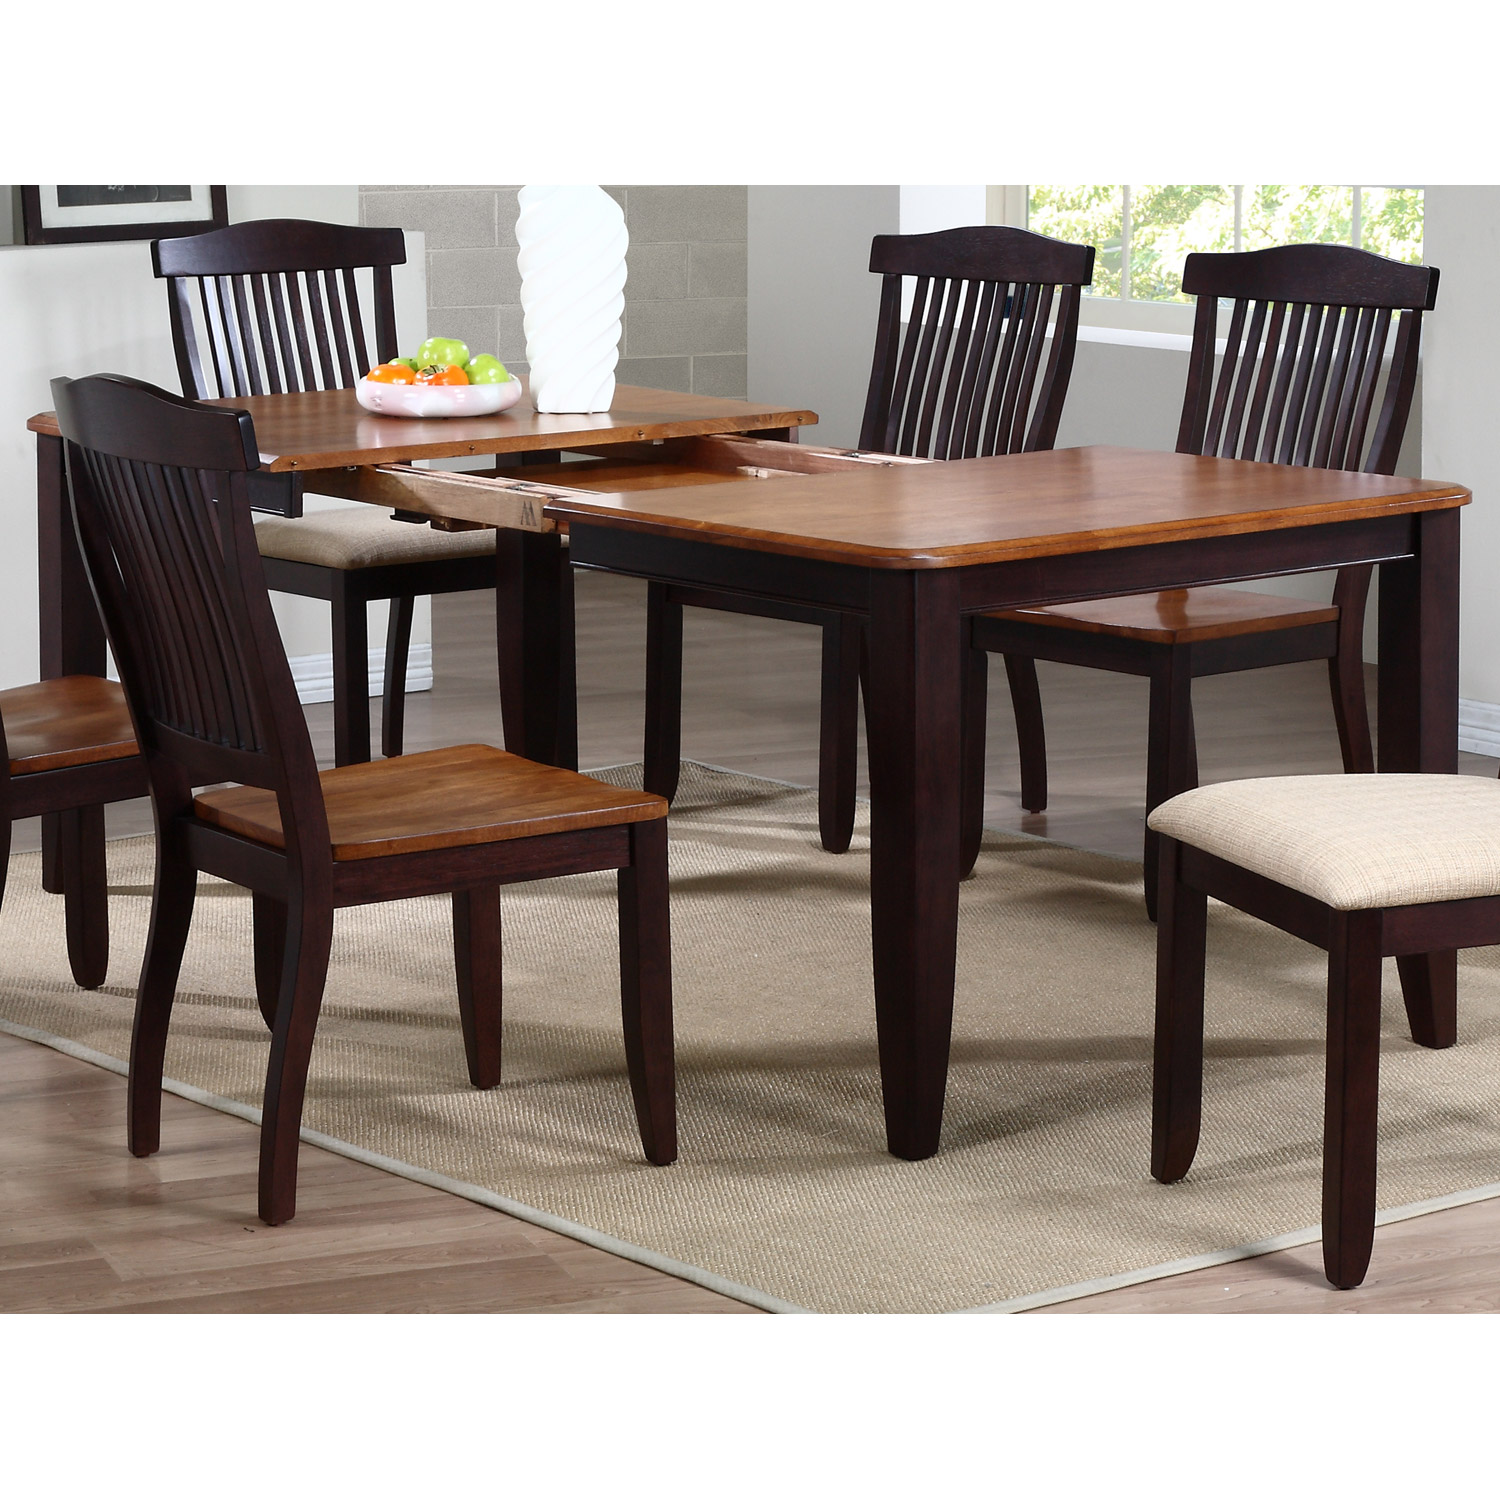 Niro Extending Dining Table - Tapered Legs, Whiskey & Mocha - ICON-RT-78-DT-WY-MA